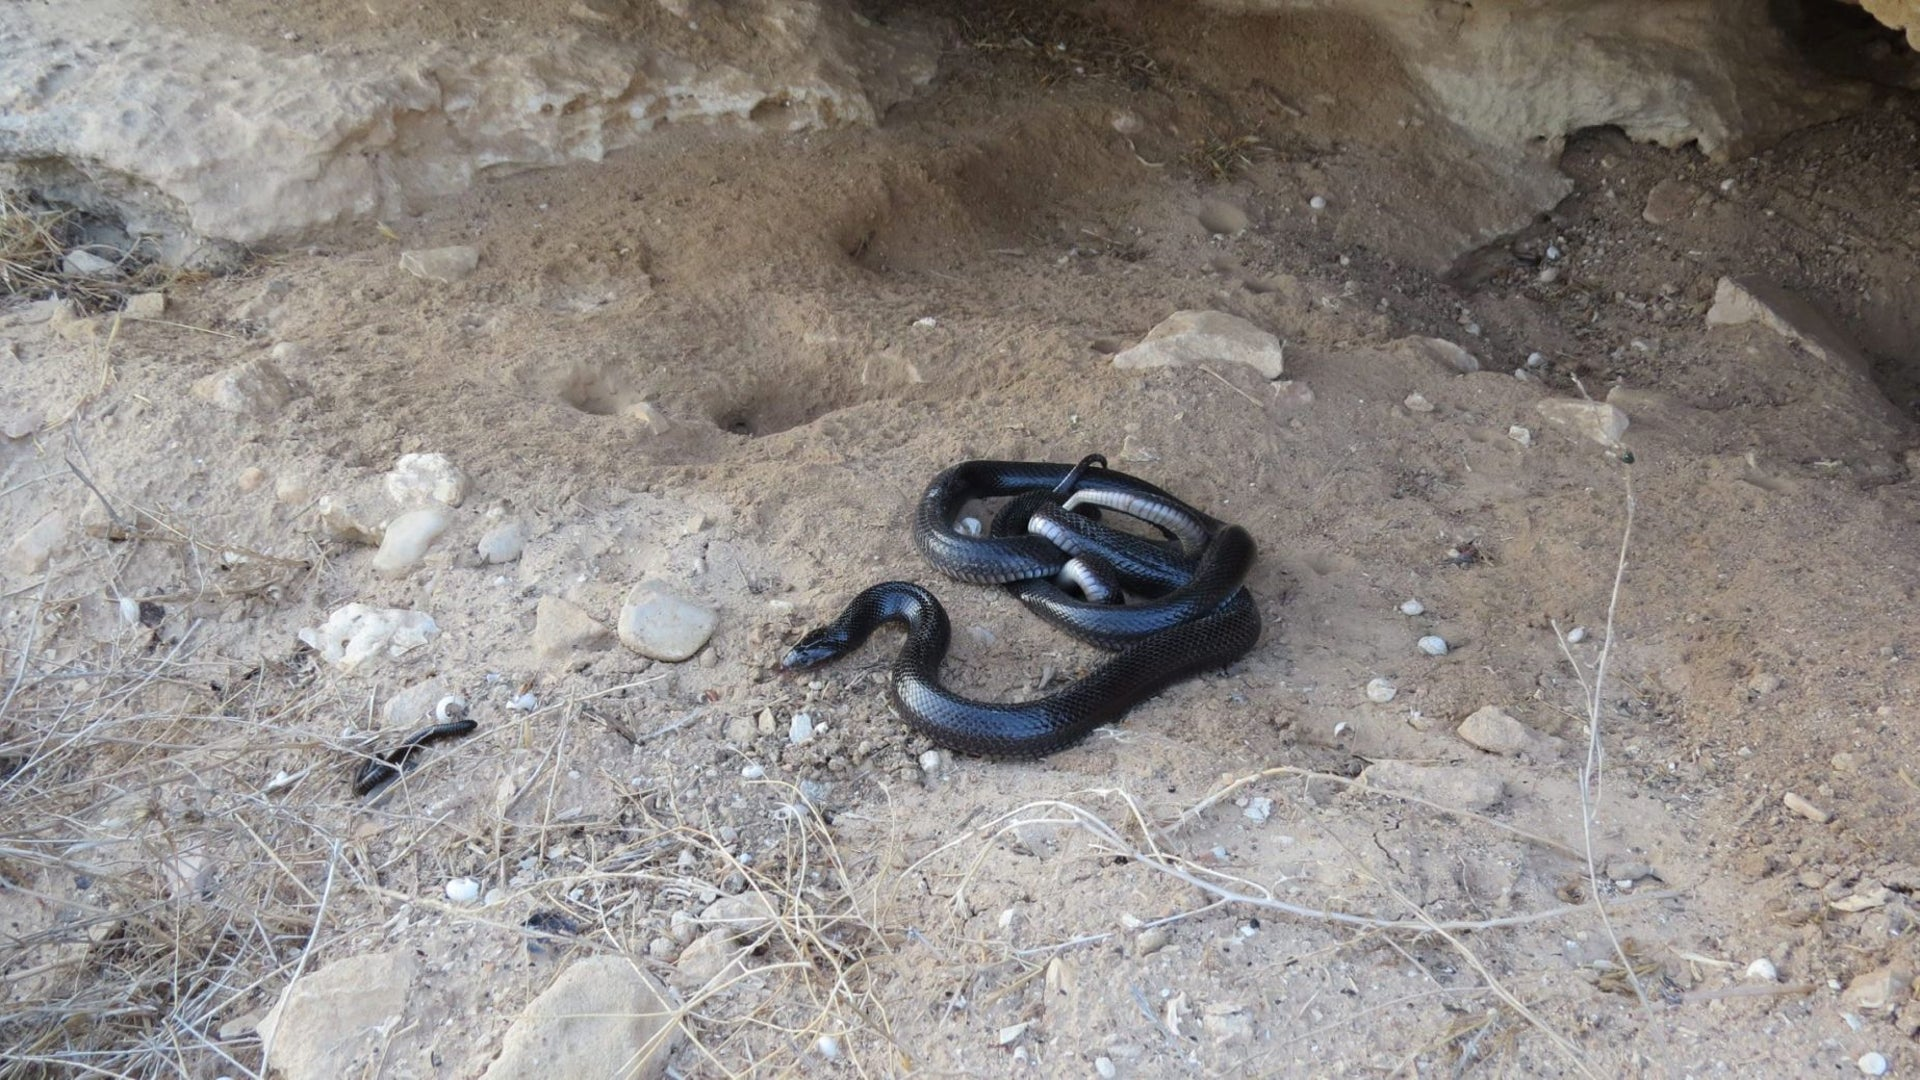 A desert black snake winds his way around the rocks in southern Israel.